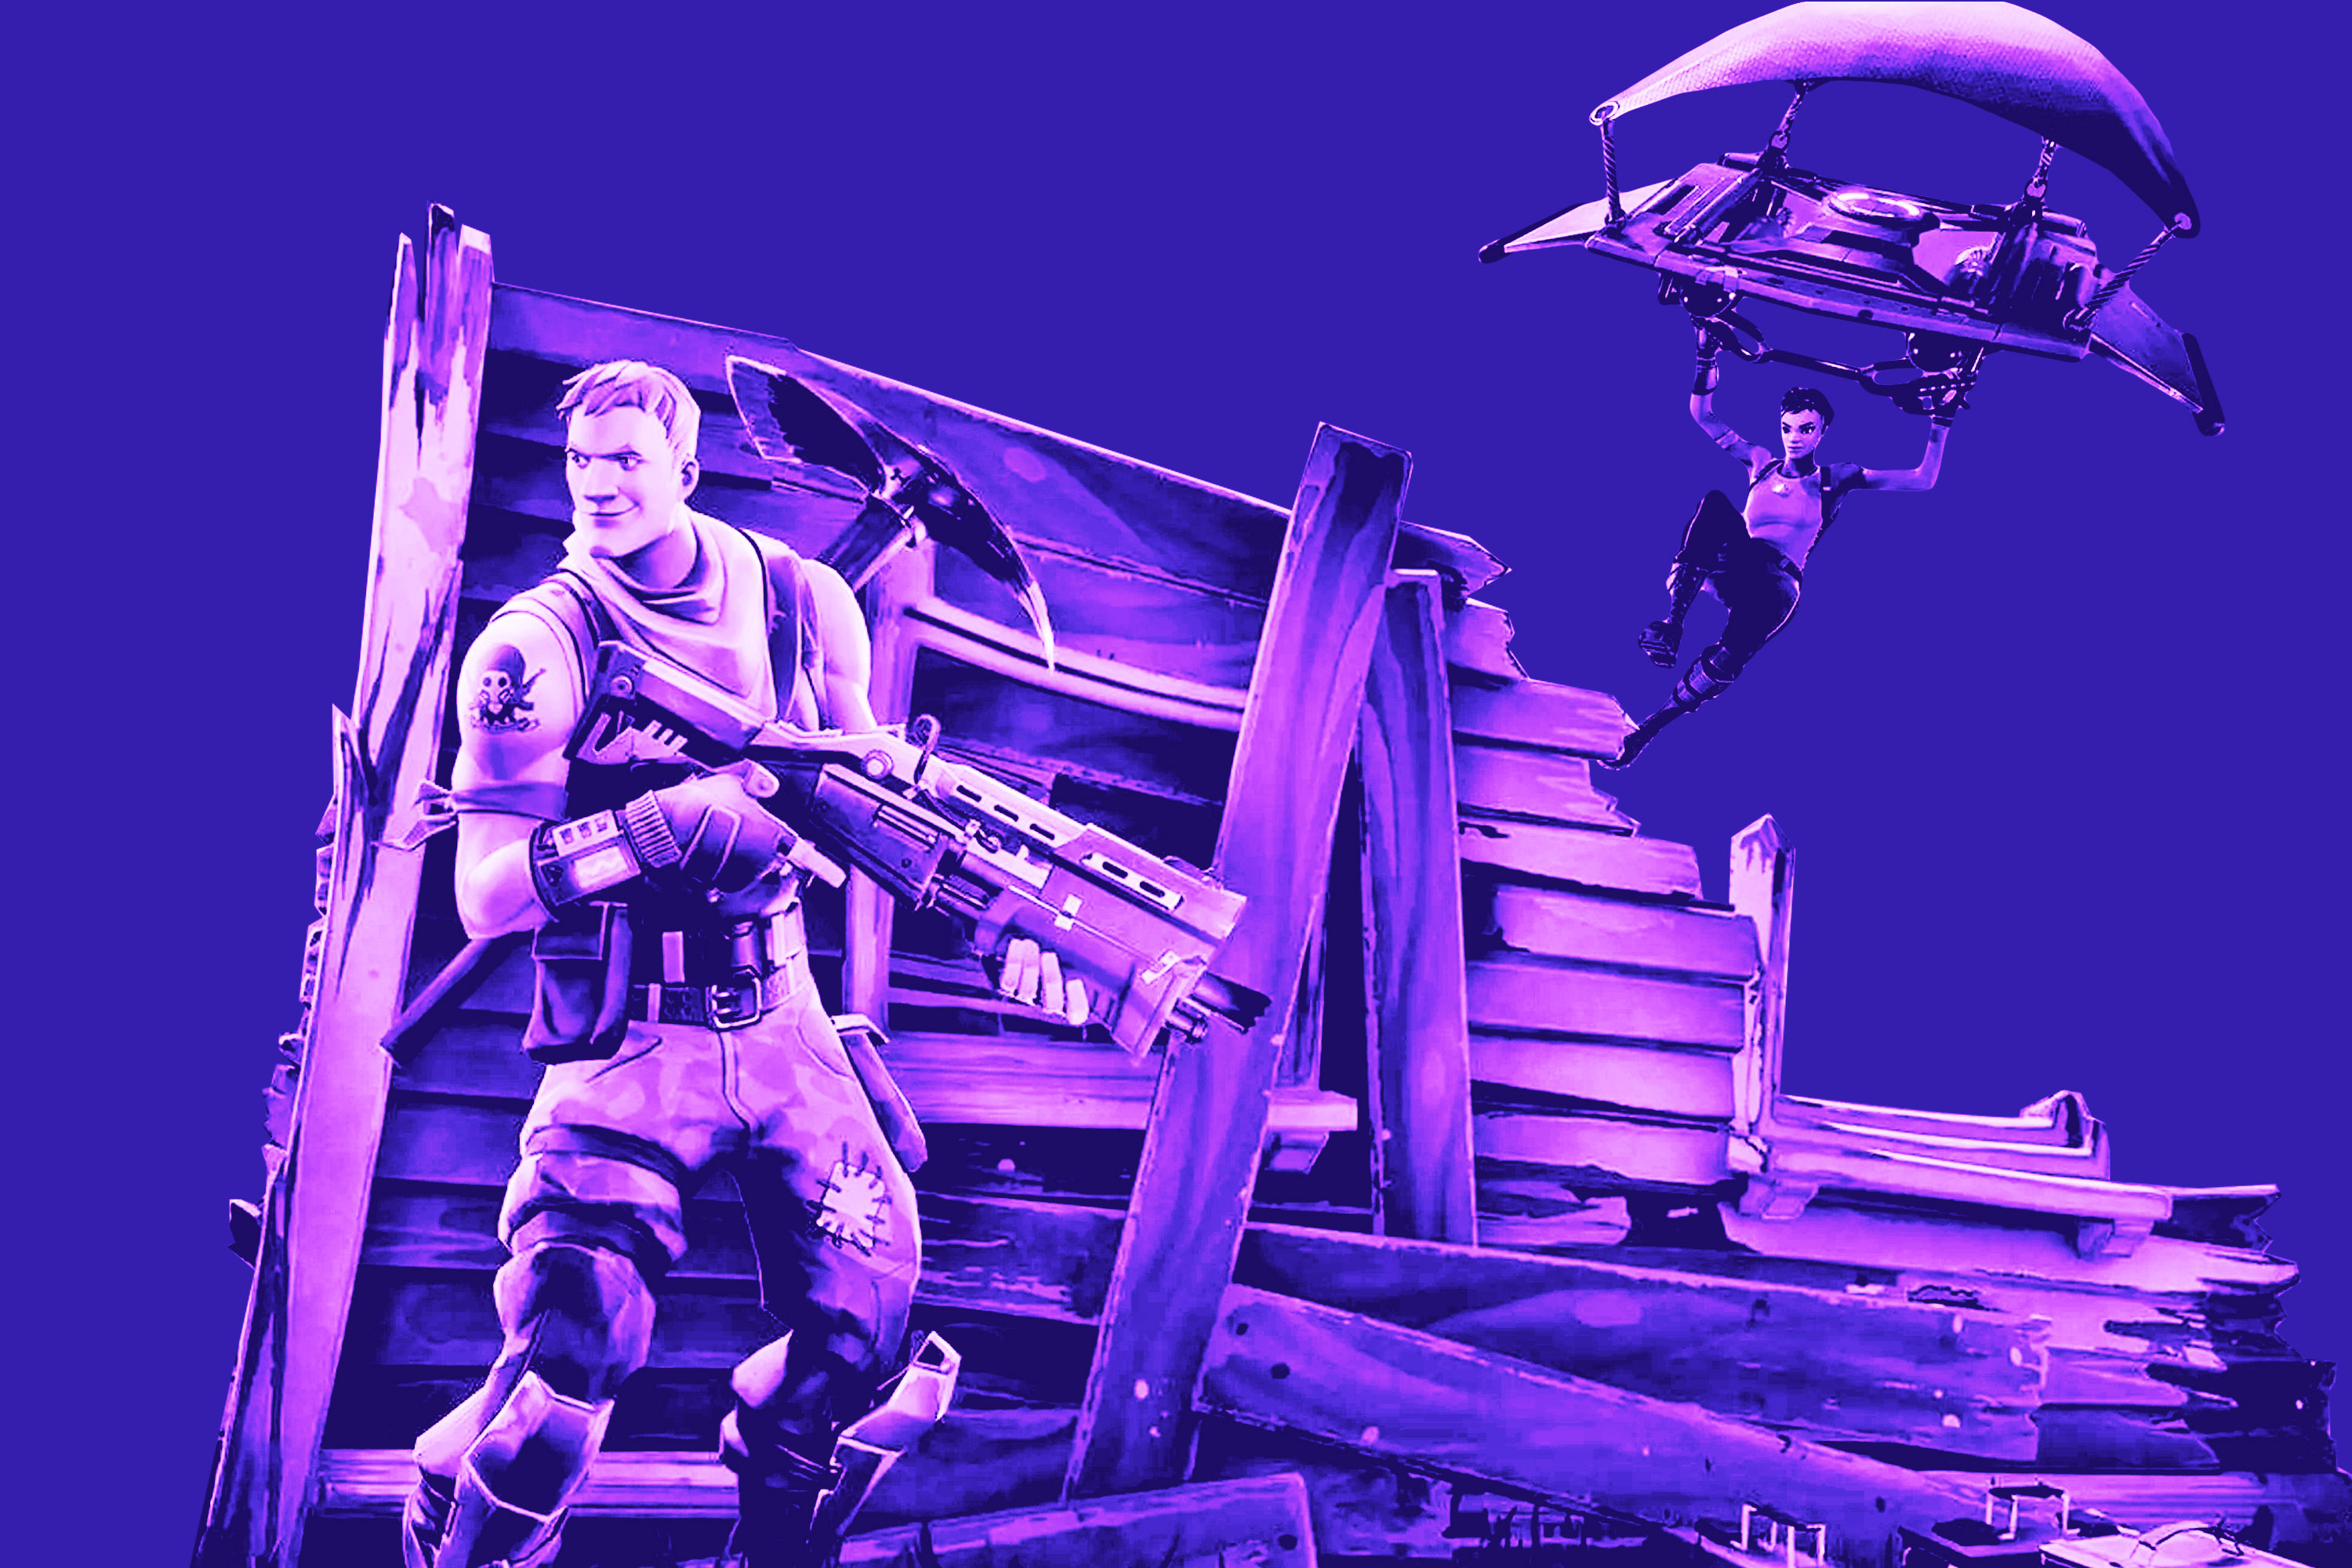 How Fortnite Conquered Gaming And Mainstream Cultures Alike The